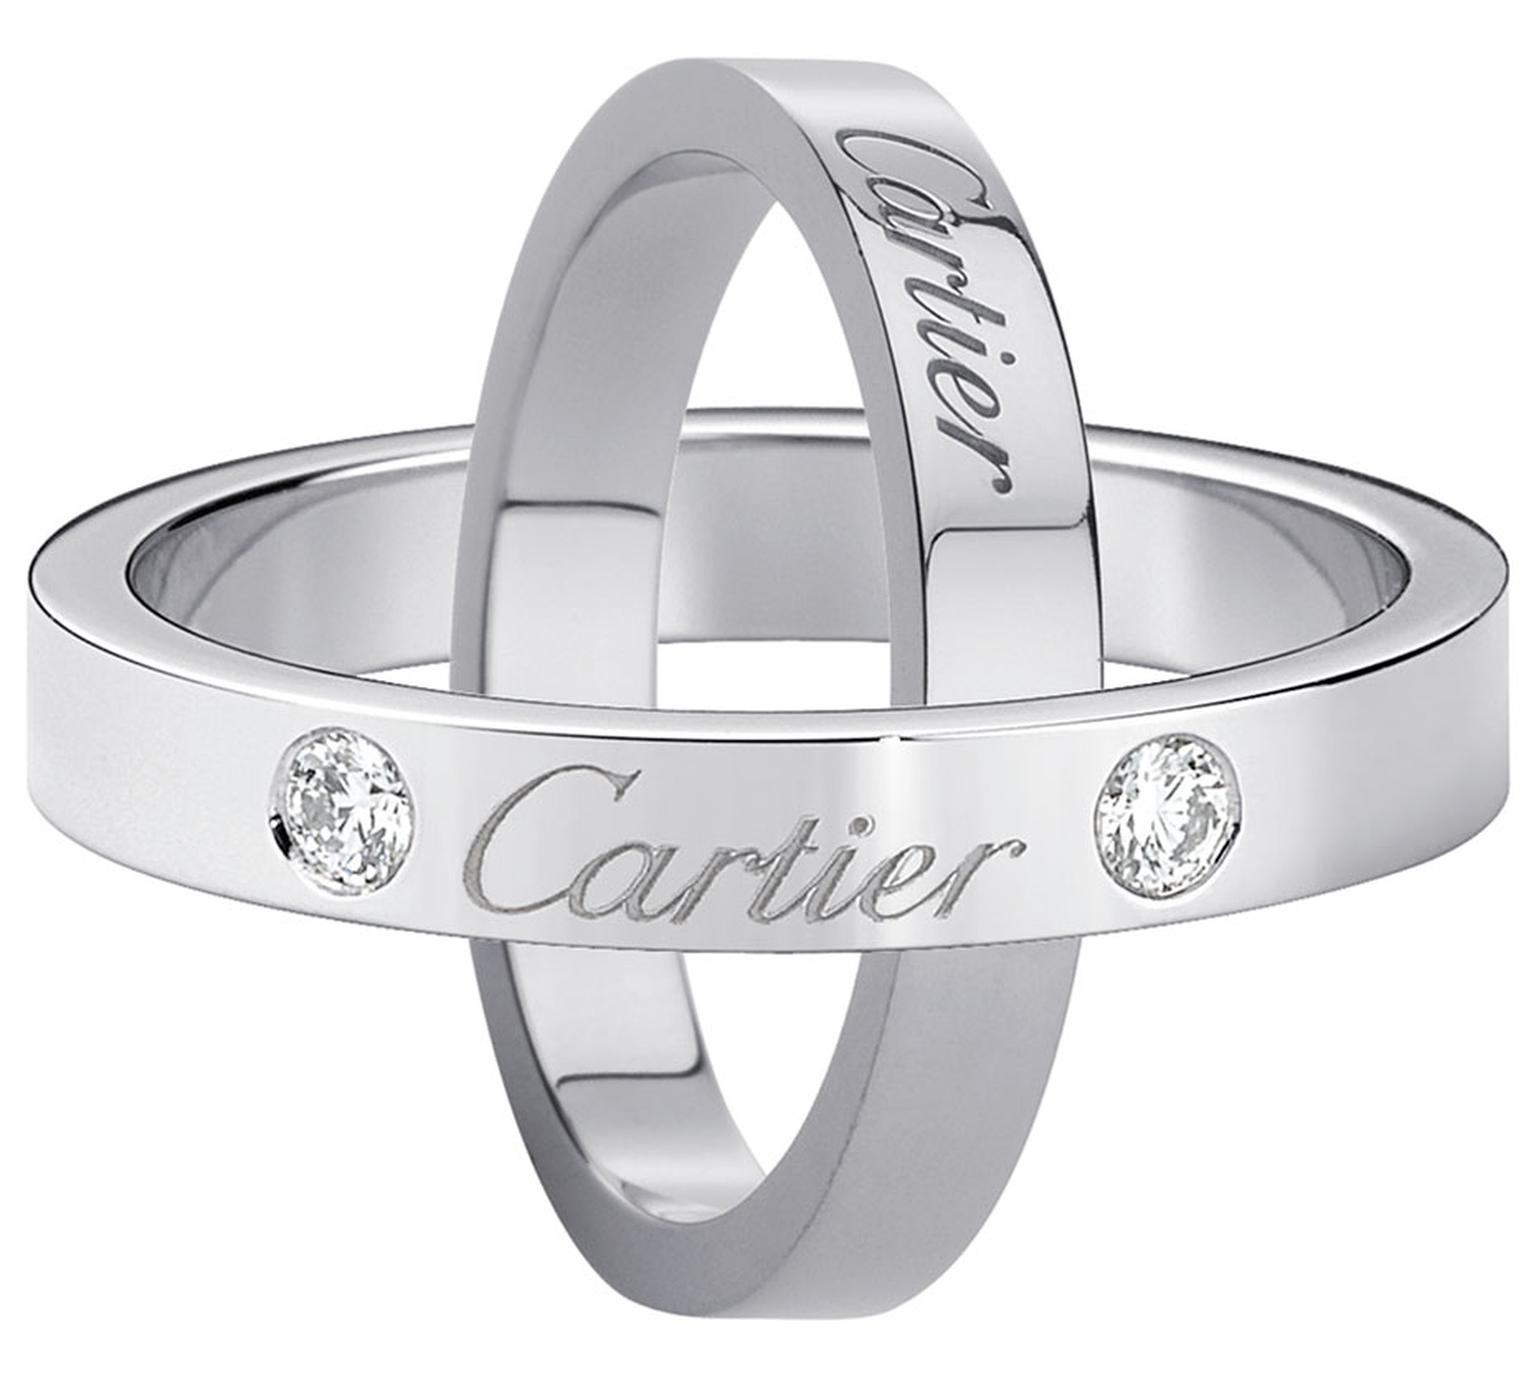 Cartier wedding MAIN PIC